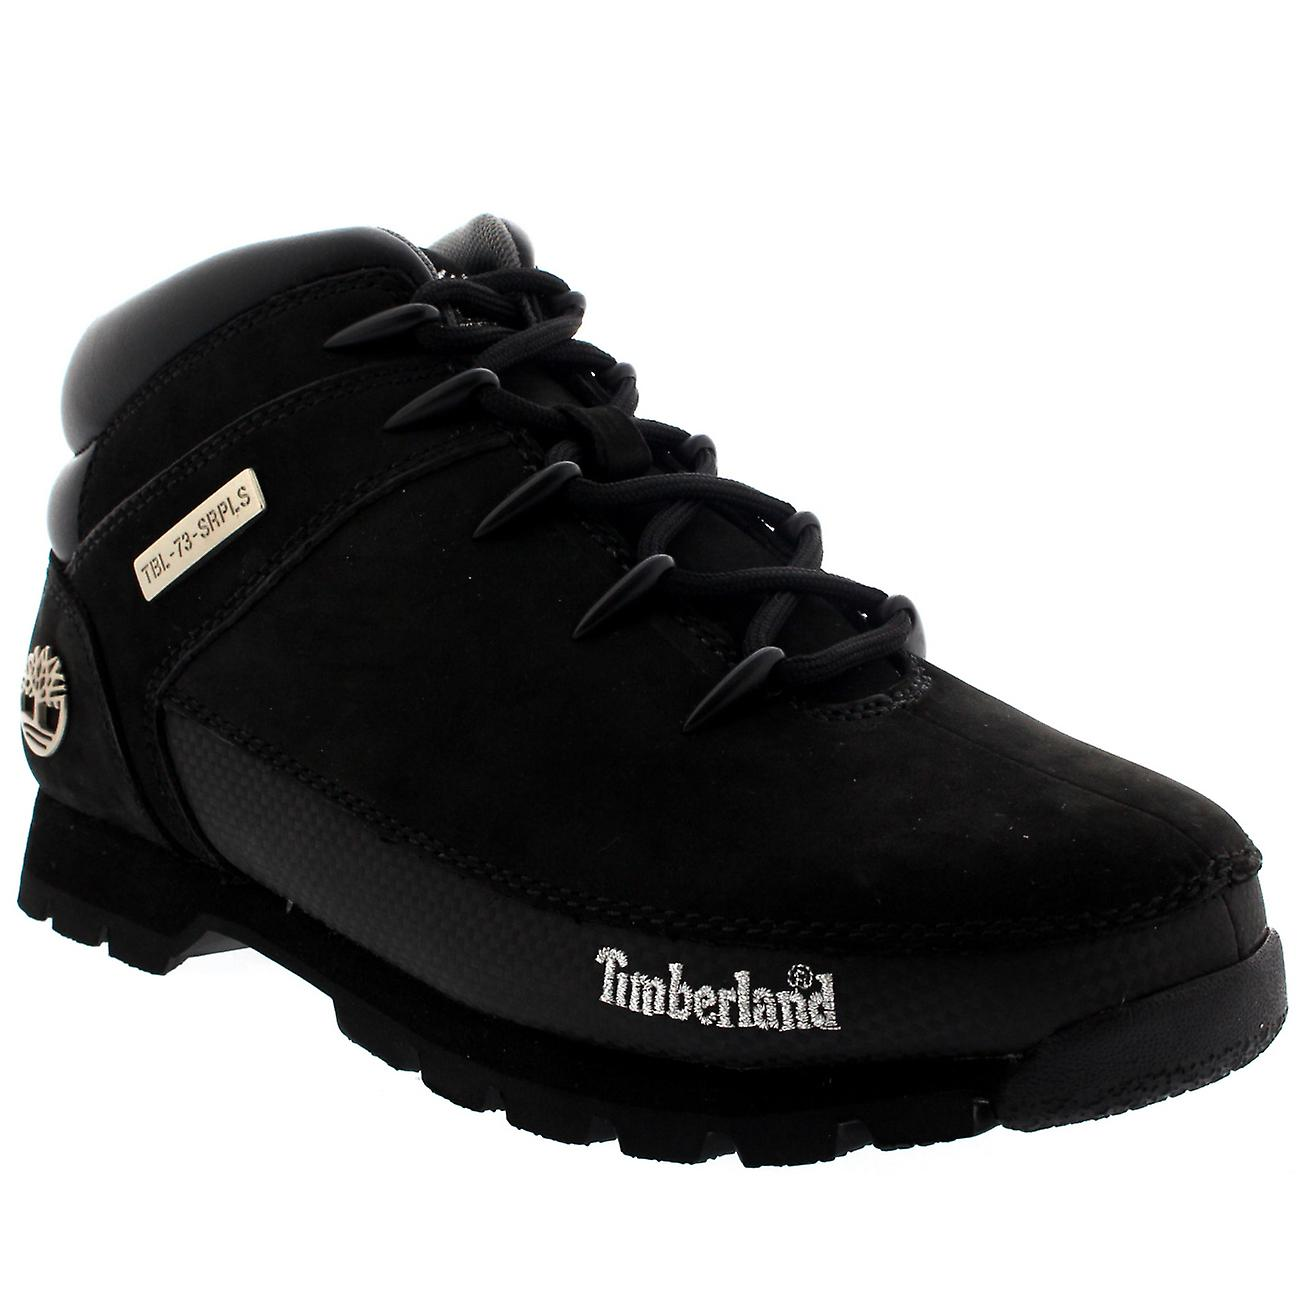 2a73506384b Mens Timberland Euro Sprint Leather Dark Brown Winter Hiking Ankle Boots